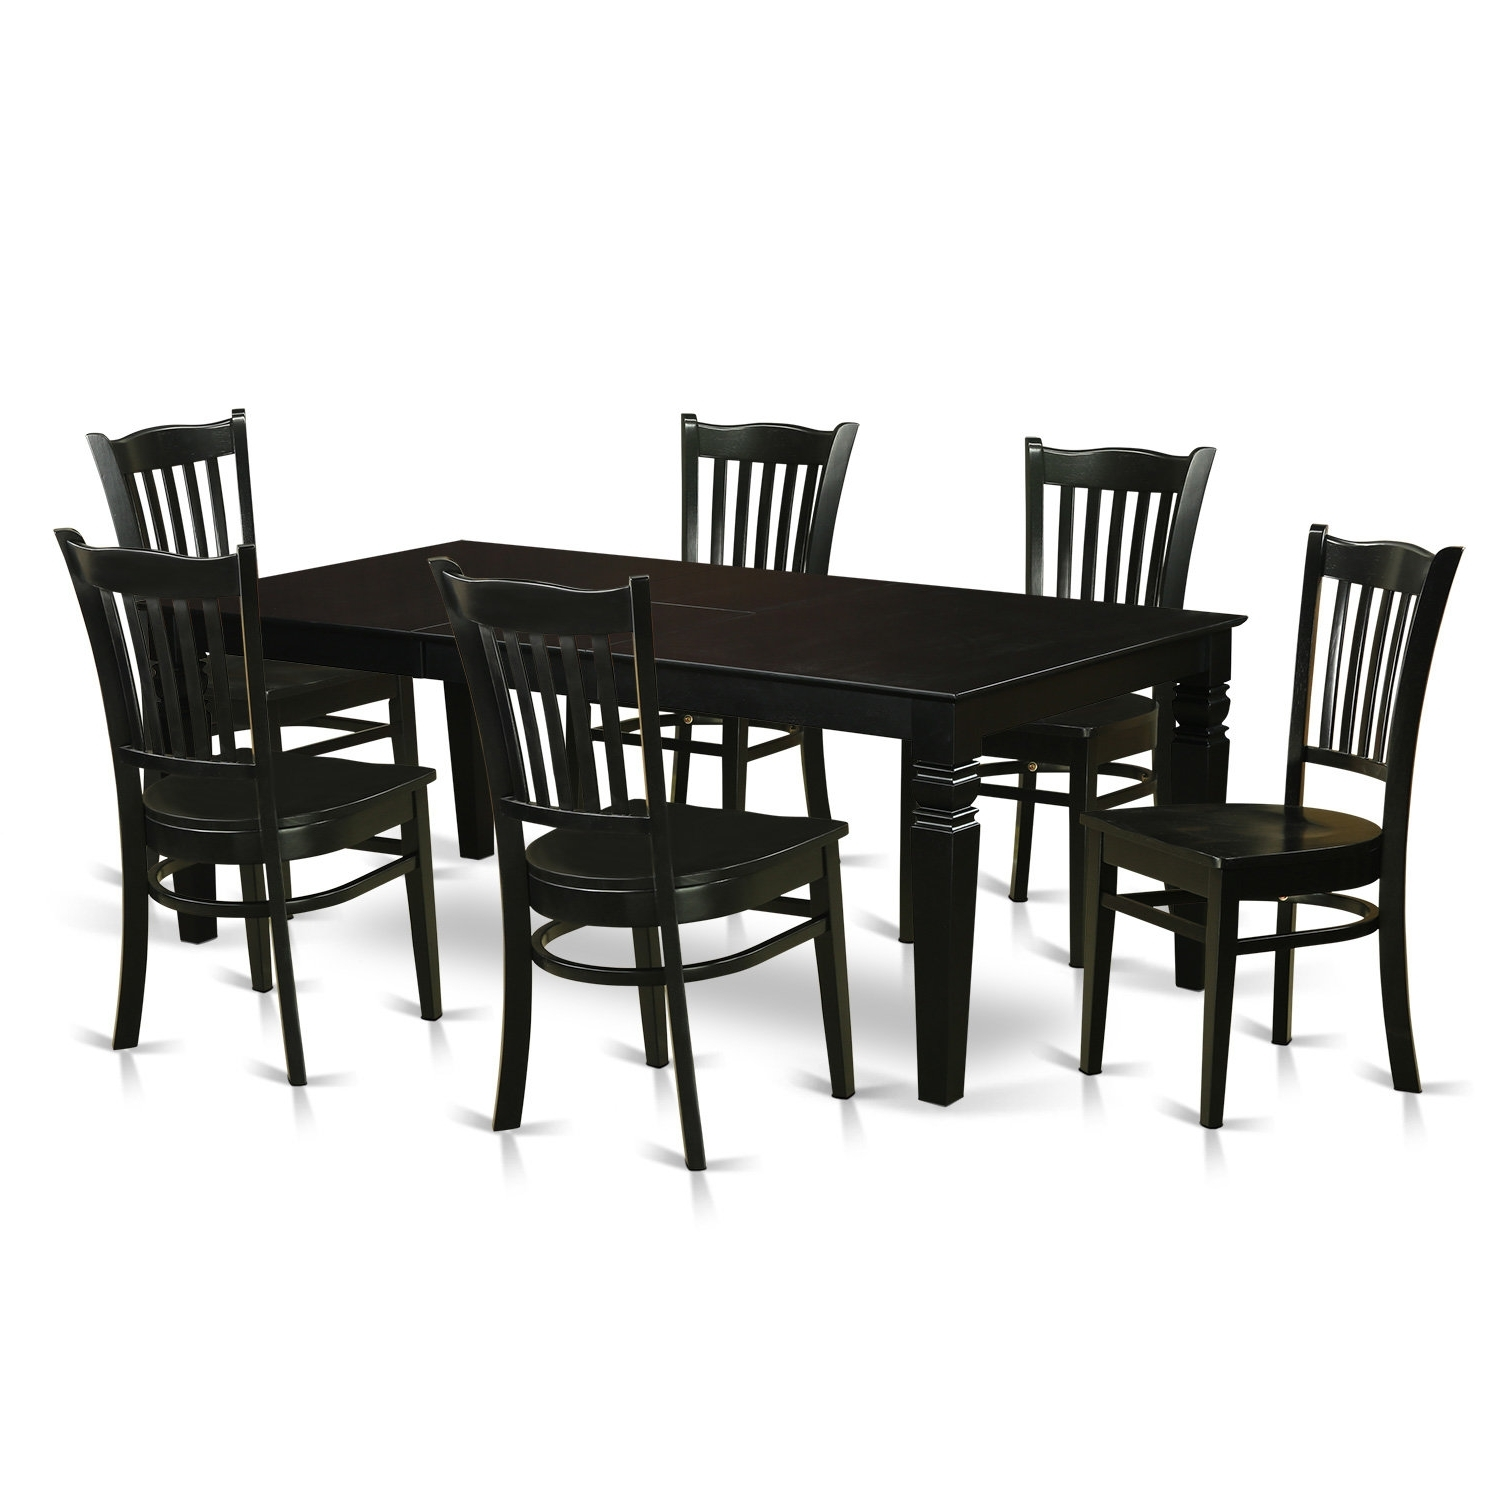 Wayfair Pertaining To Candice Ii 7 Piece Extension Rectangular Dining Sets With Uph Side Chairs (View 23 of 25)